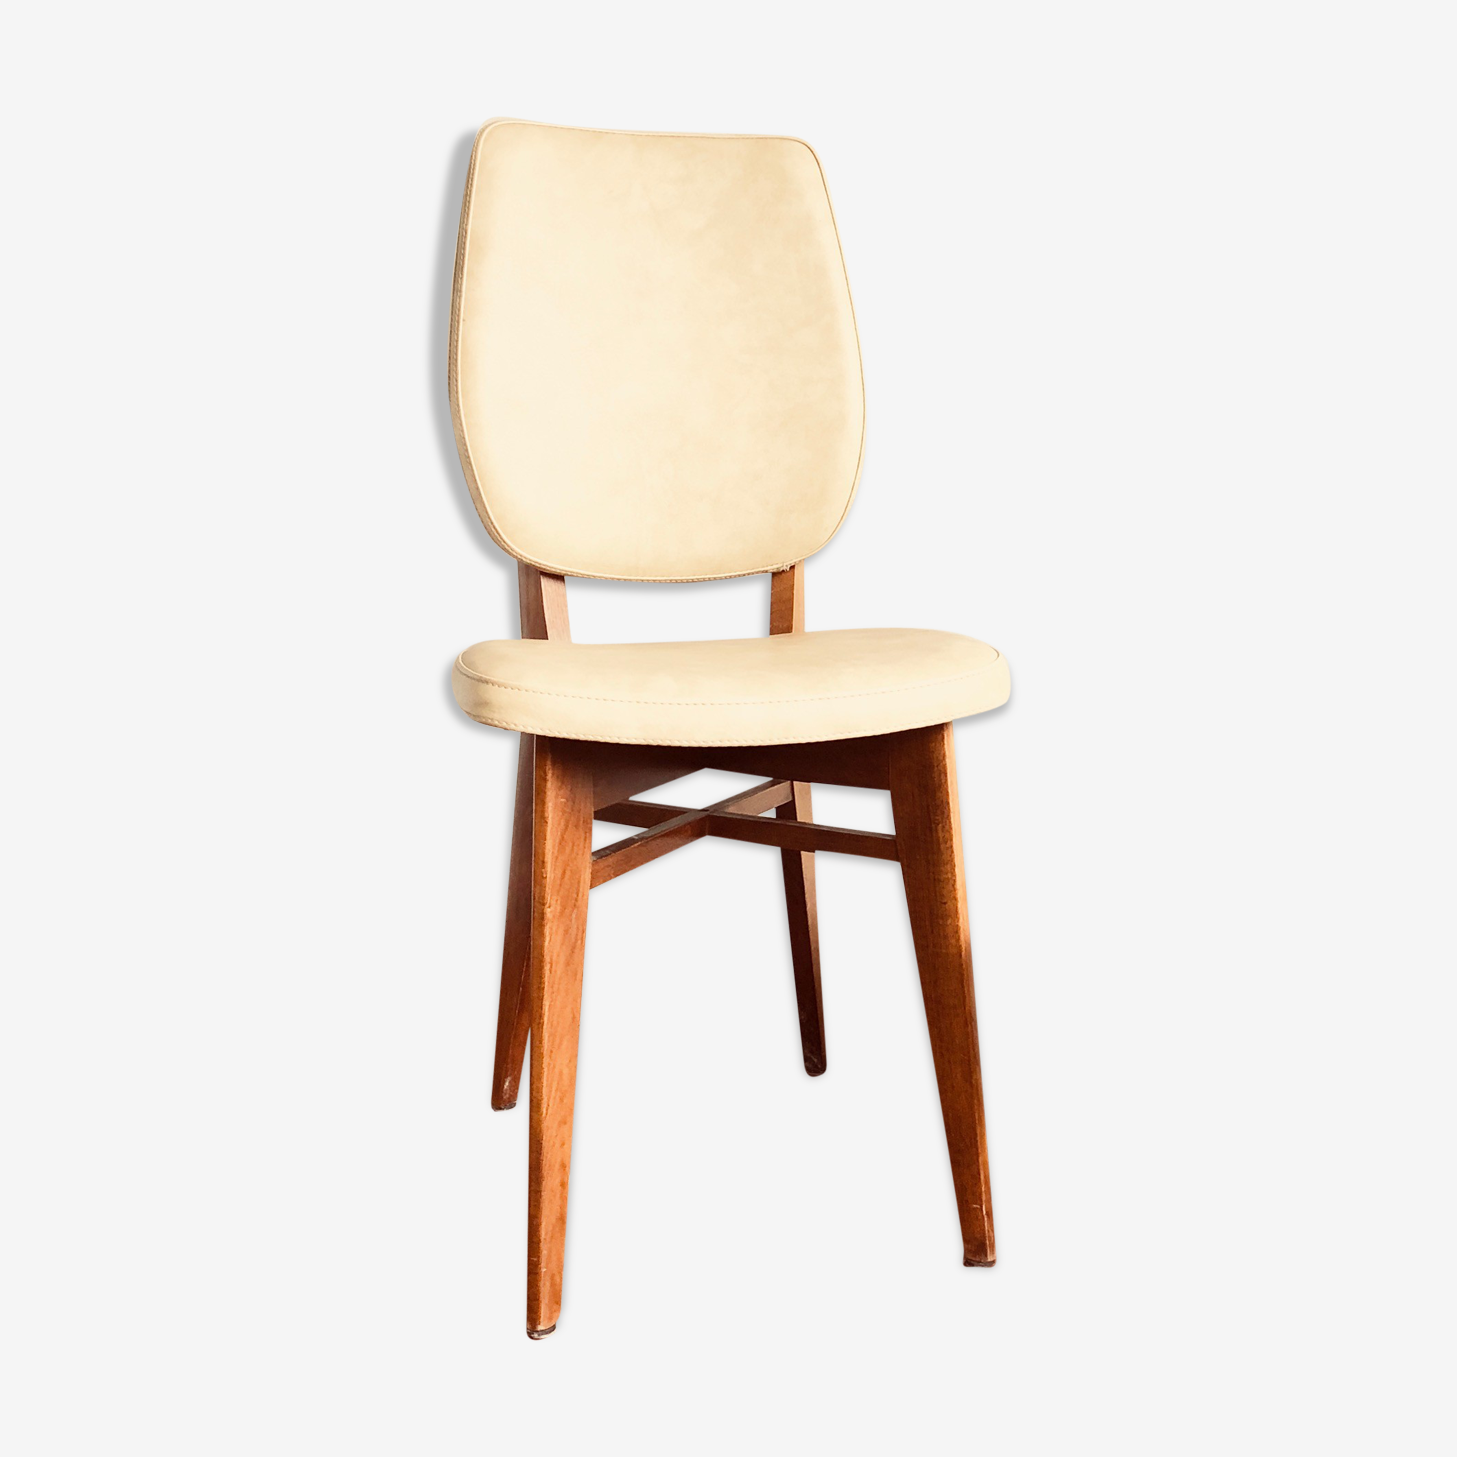 Chair wood and leatherette years 1958